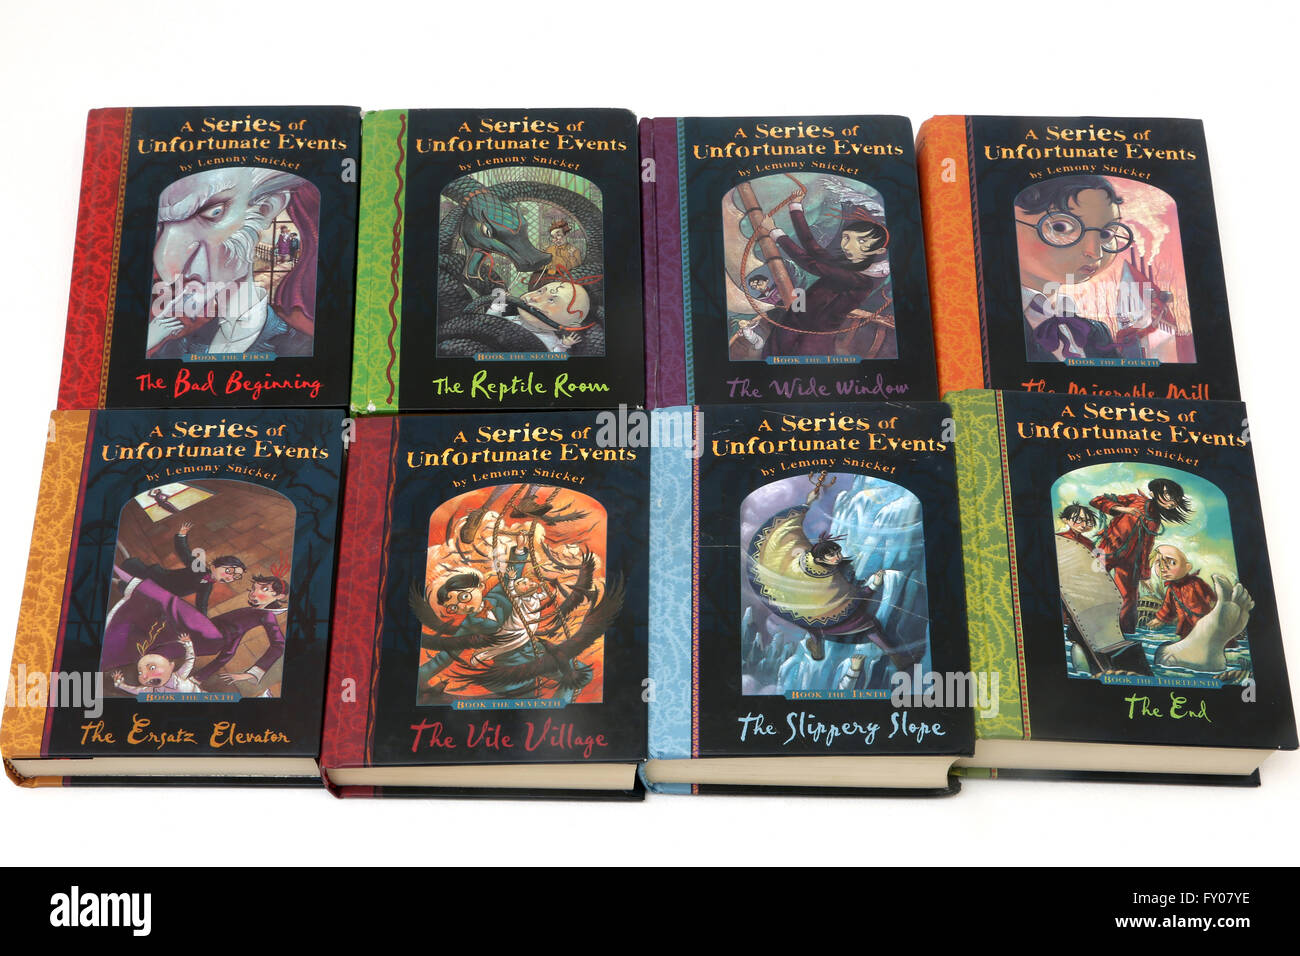 Lemony Snicket A Series Of Unfortunate Events Series Of Children Books